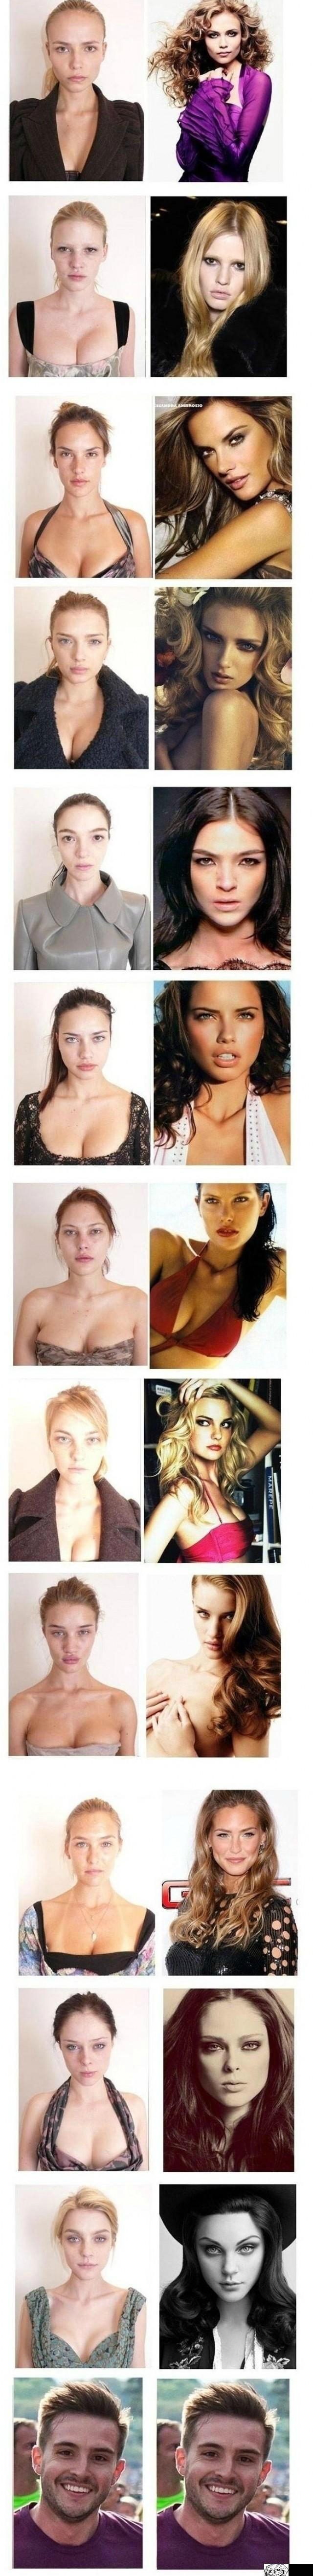 supermodels without make up, before and after